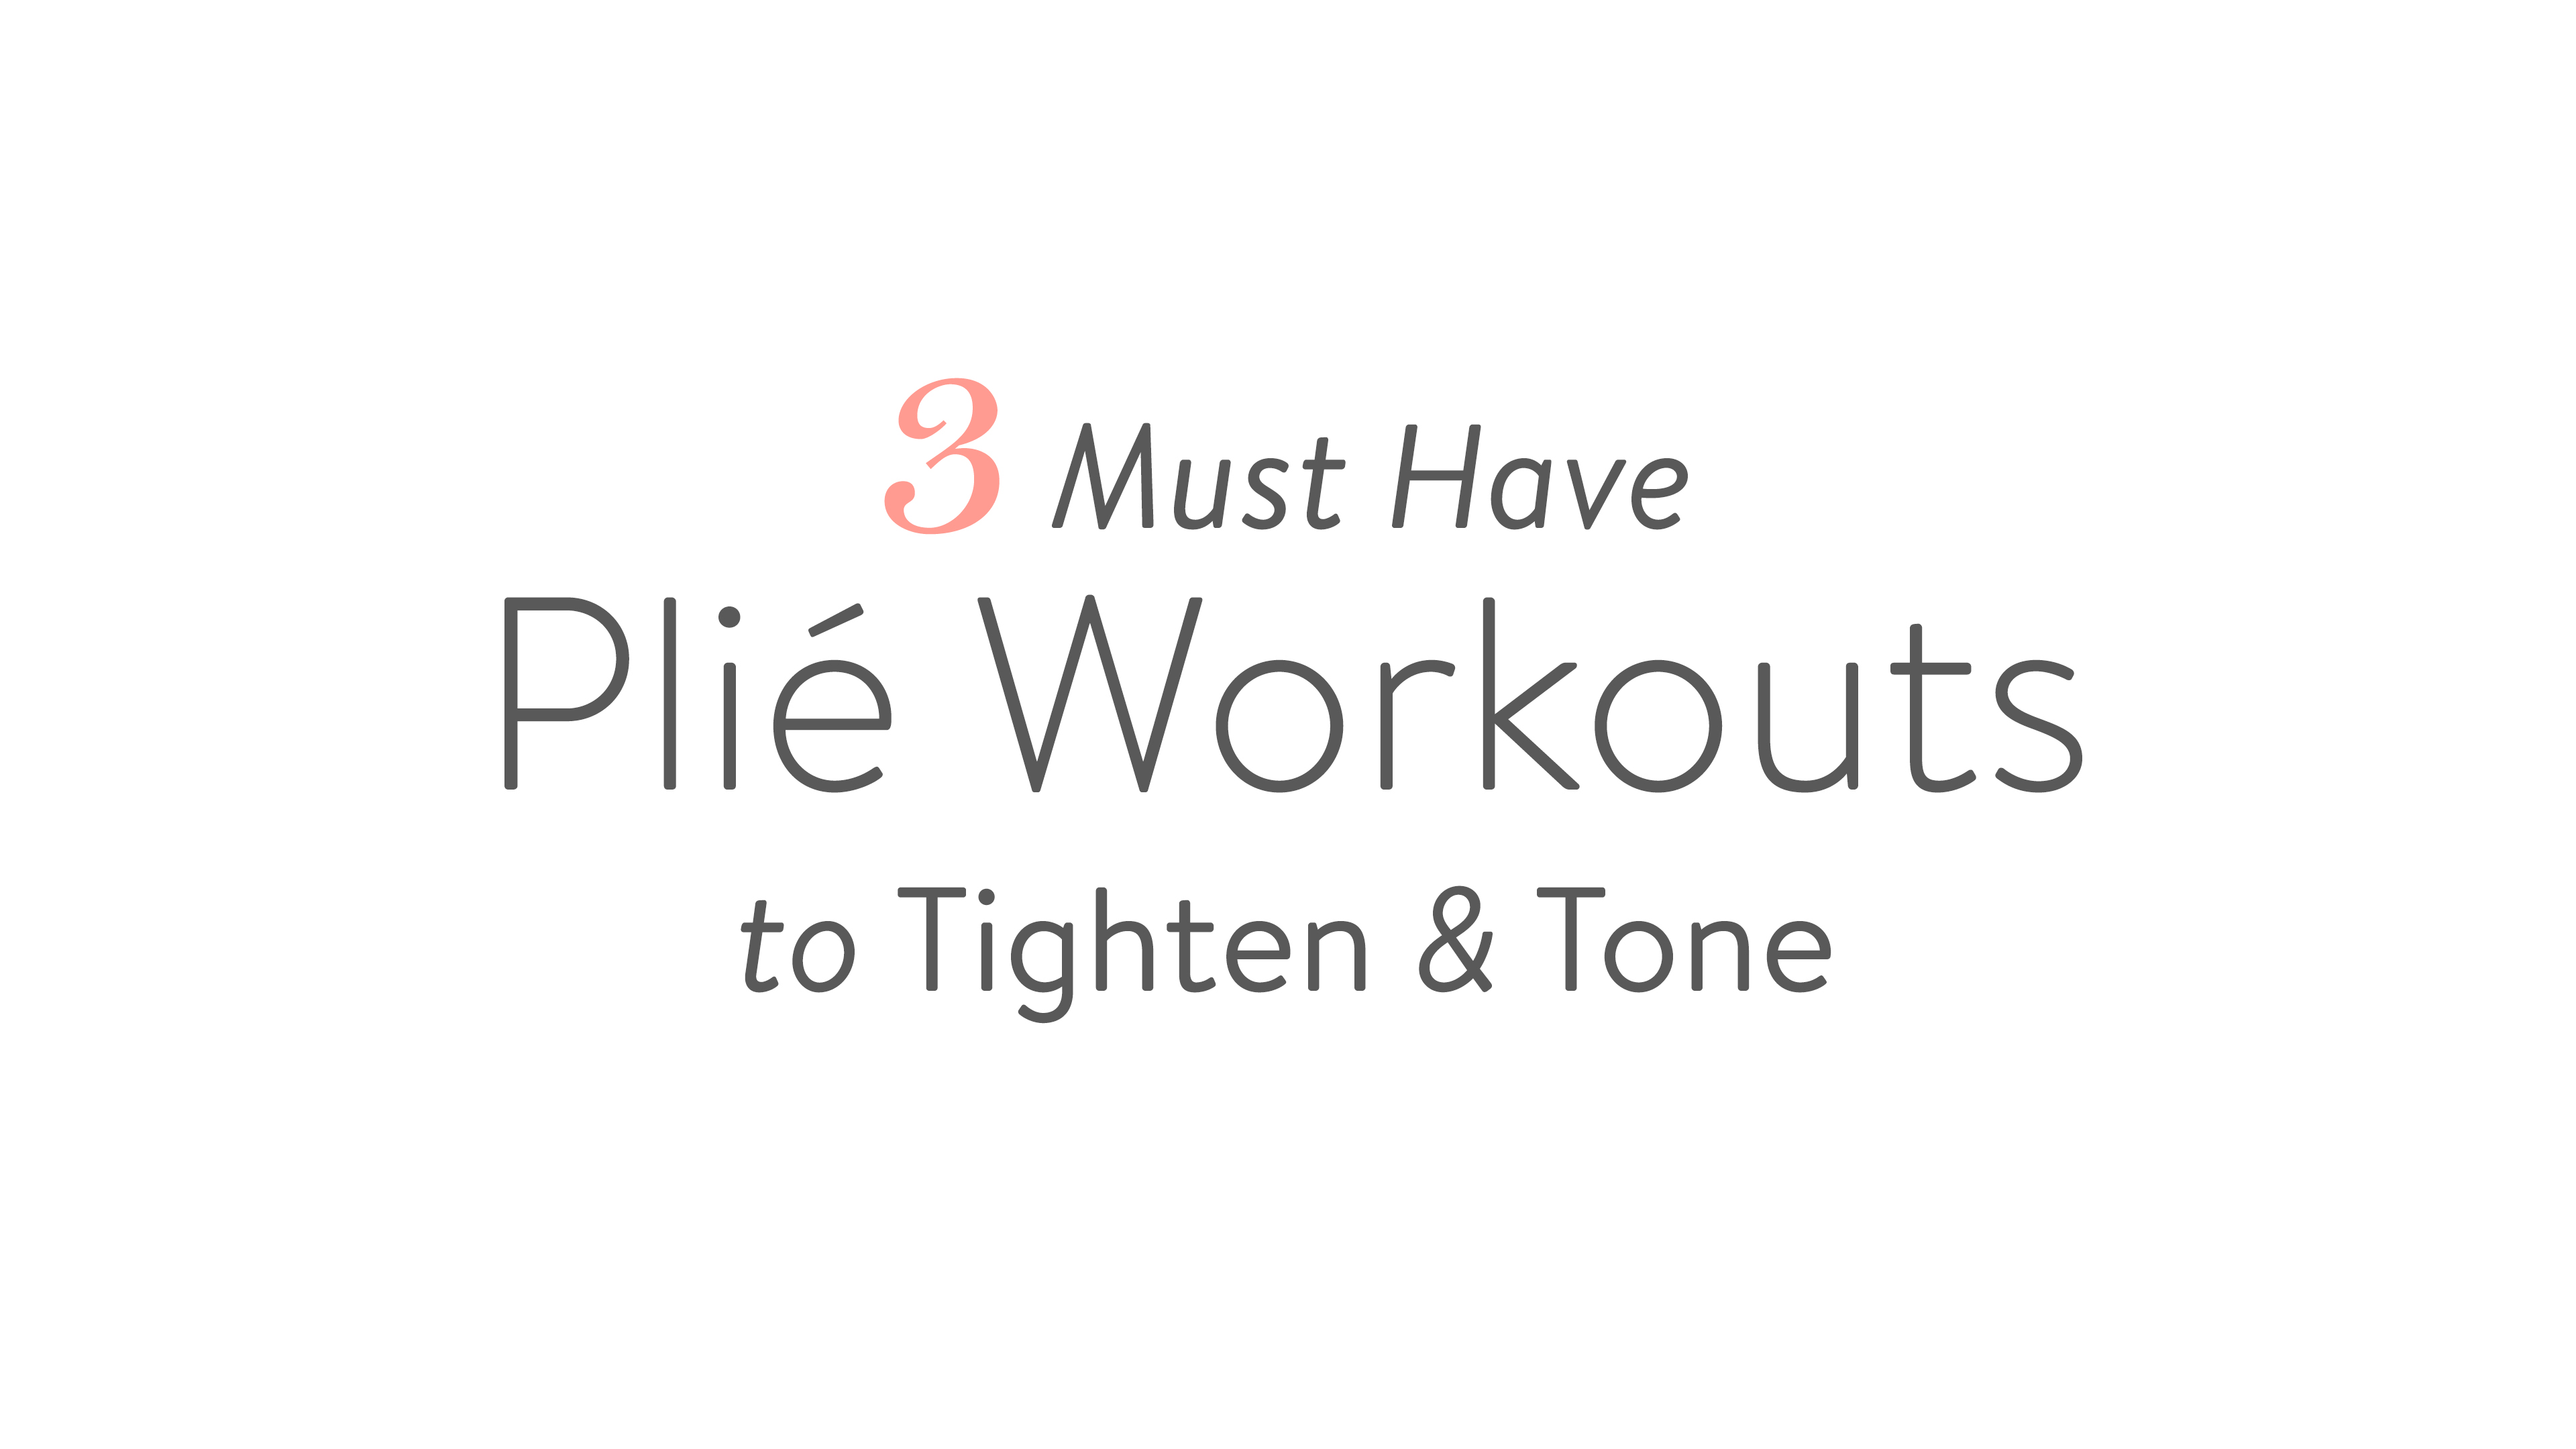 3 Must Have Plié Workouts to Tighten & Tone